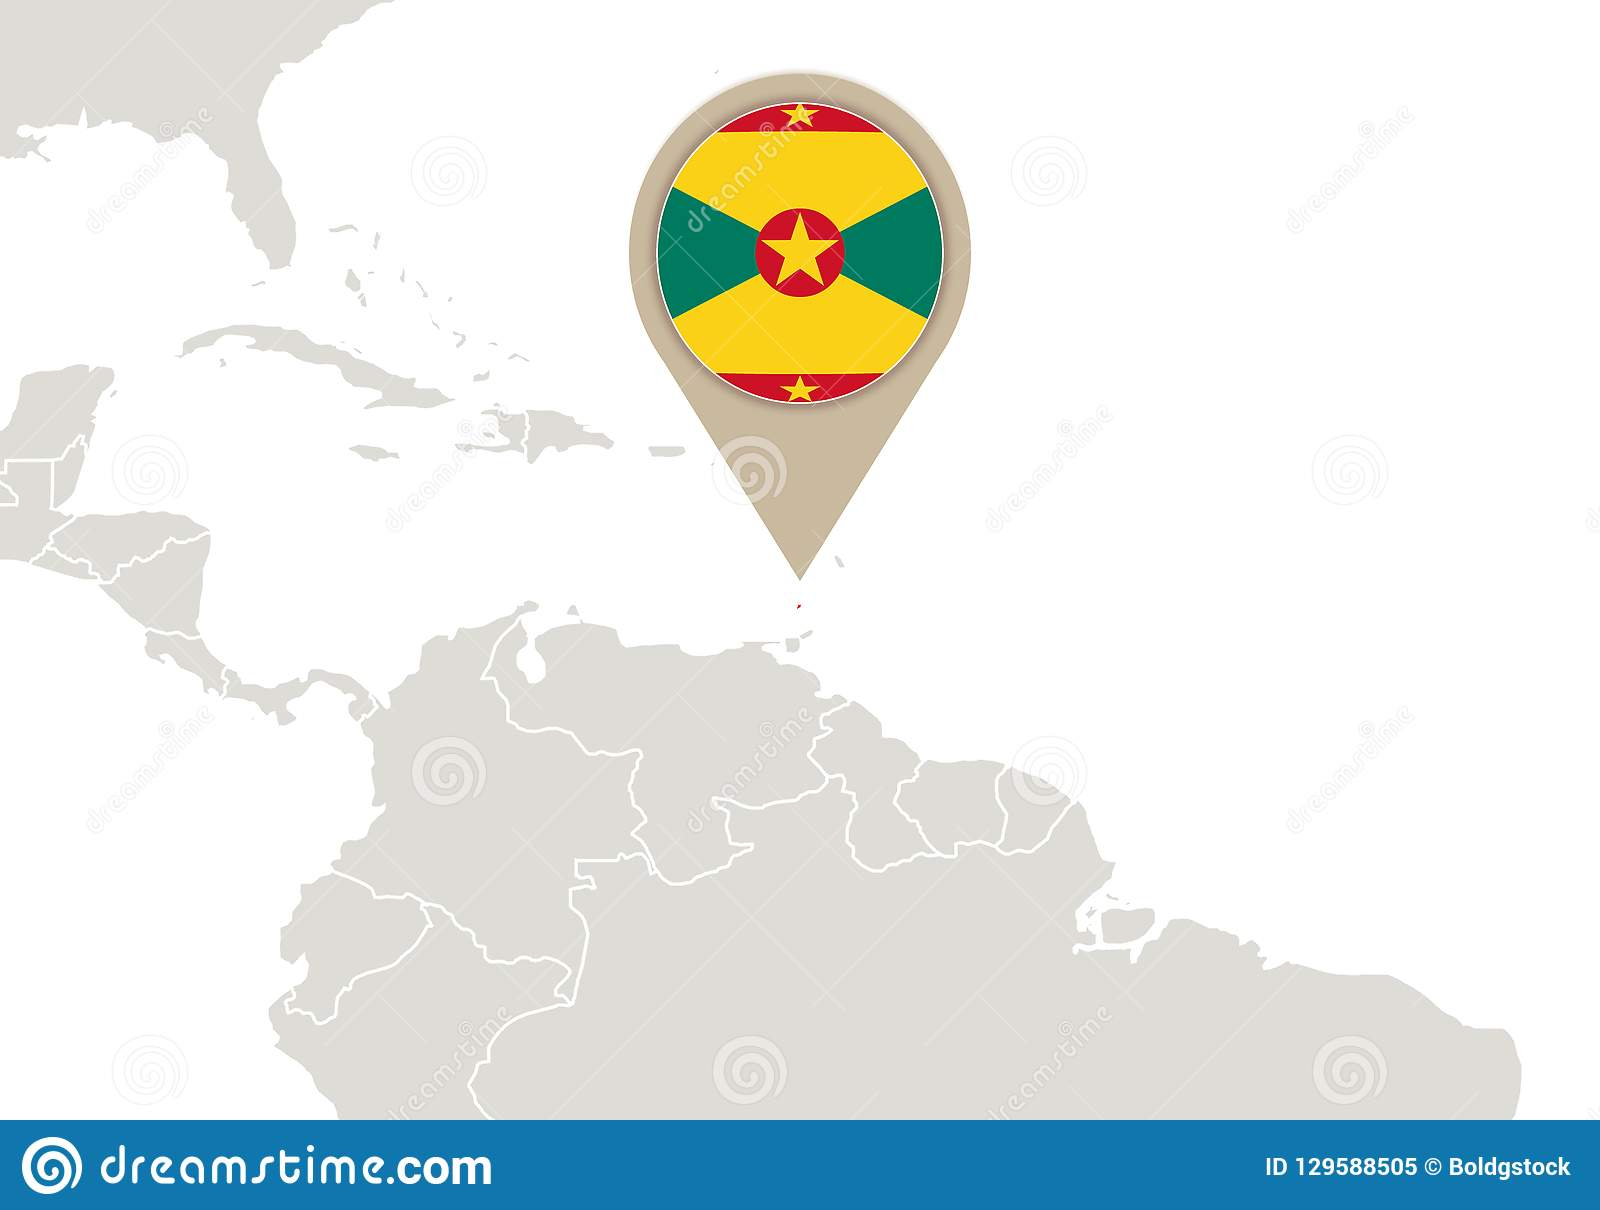 Picture of: Grenada On World Map Stock Vector Illustration Of Country 129588505